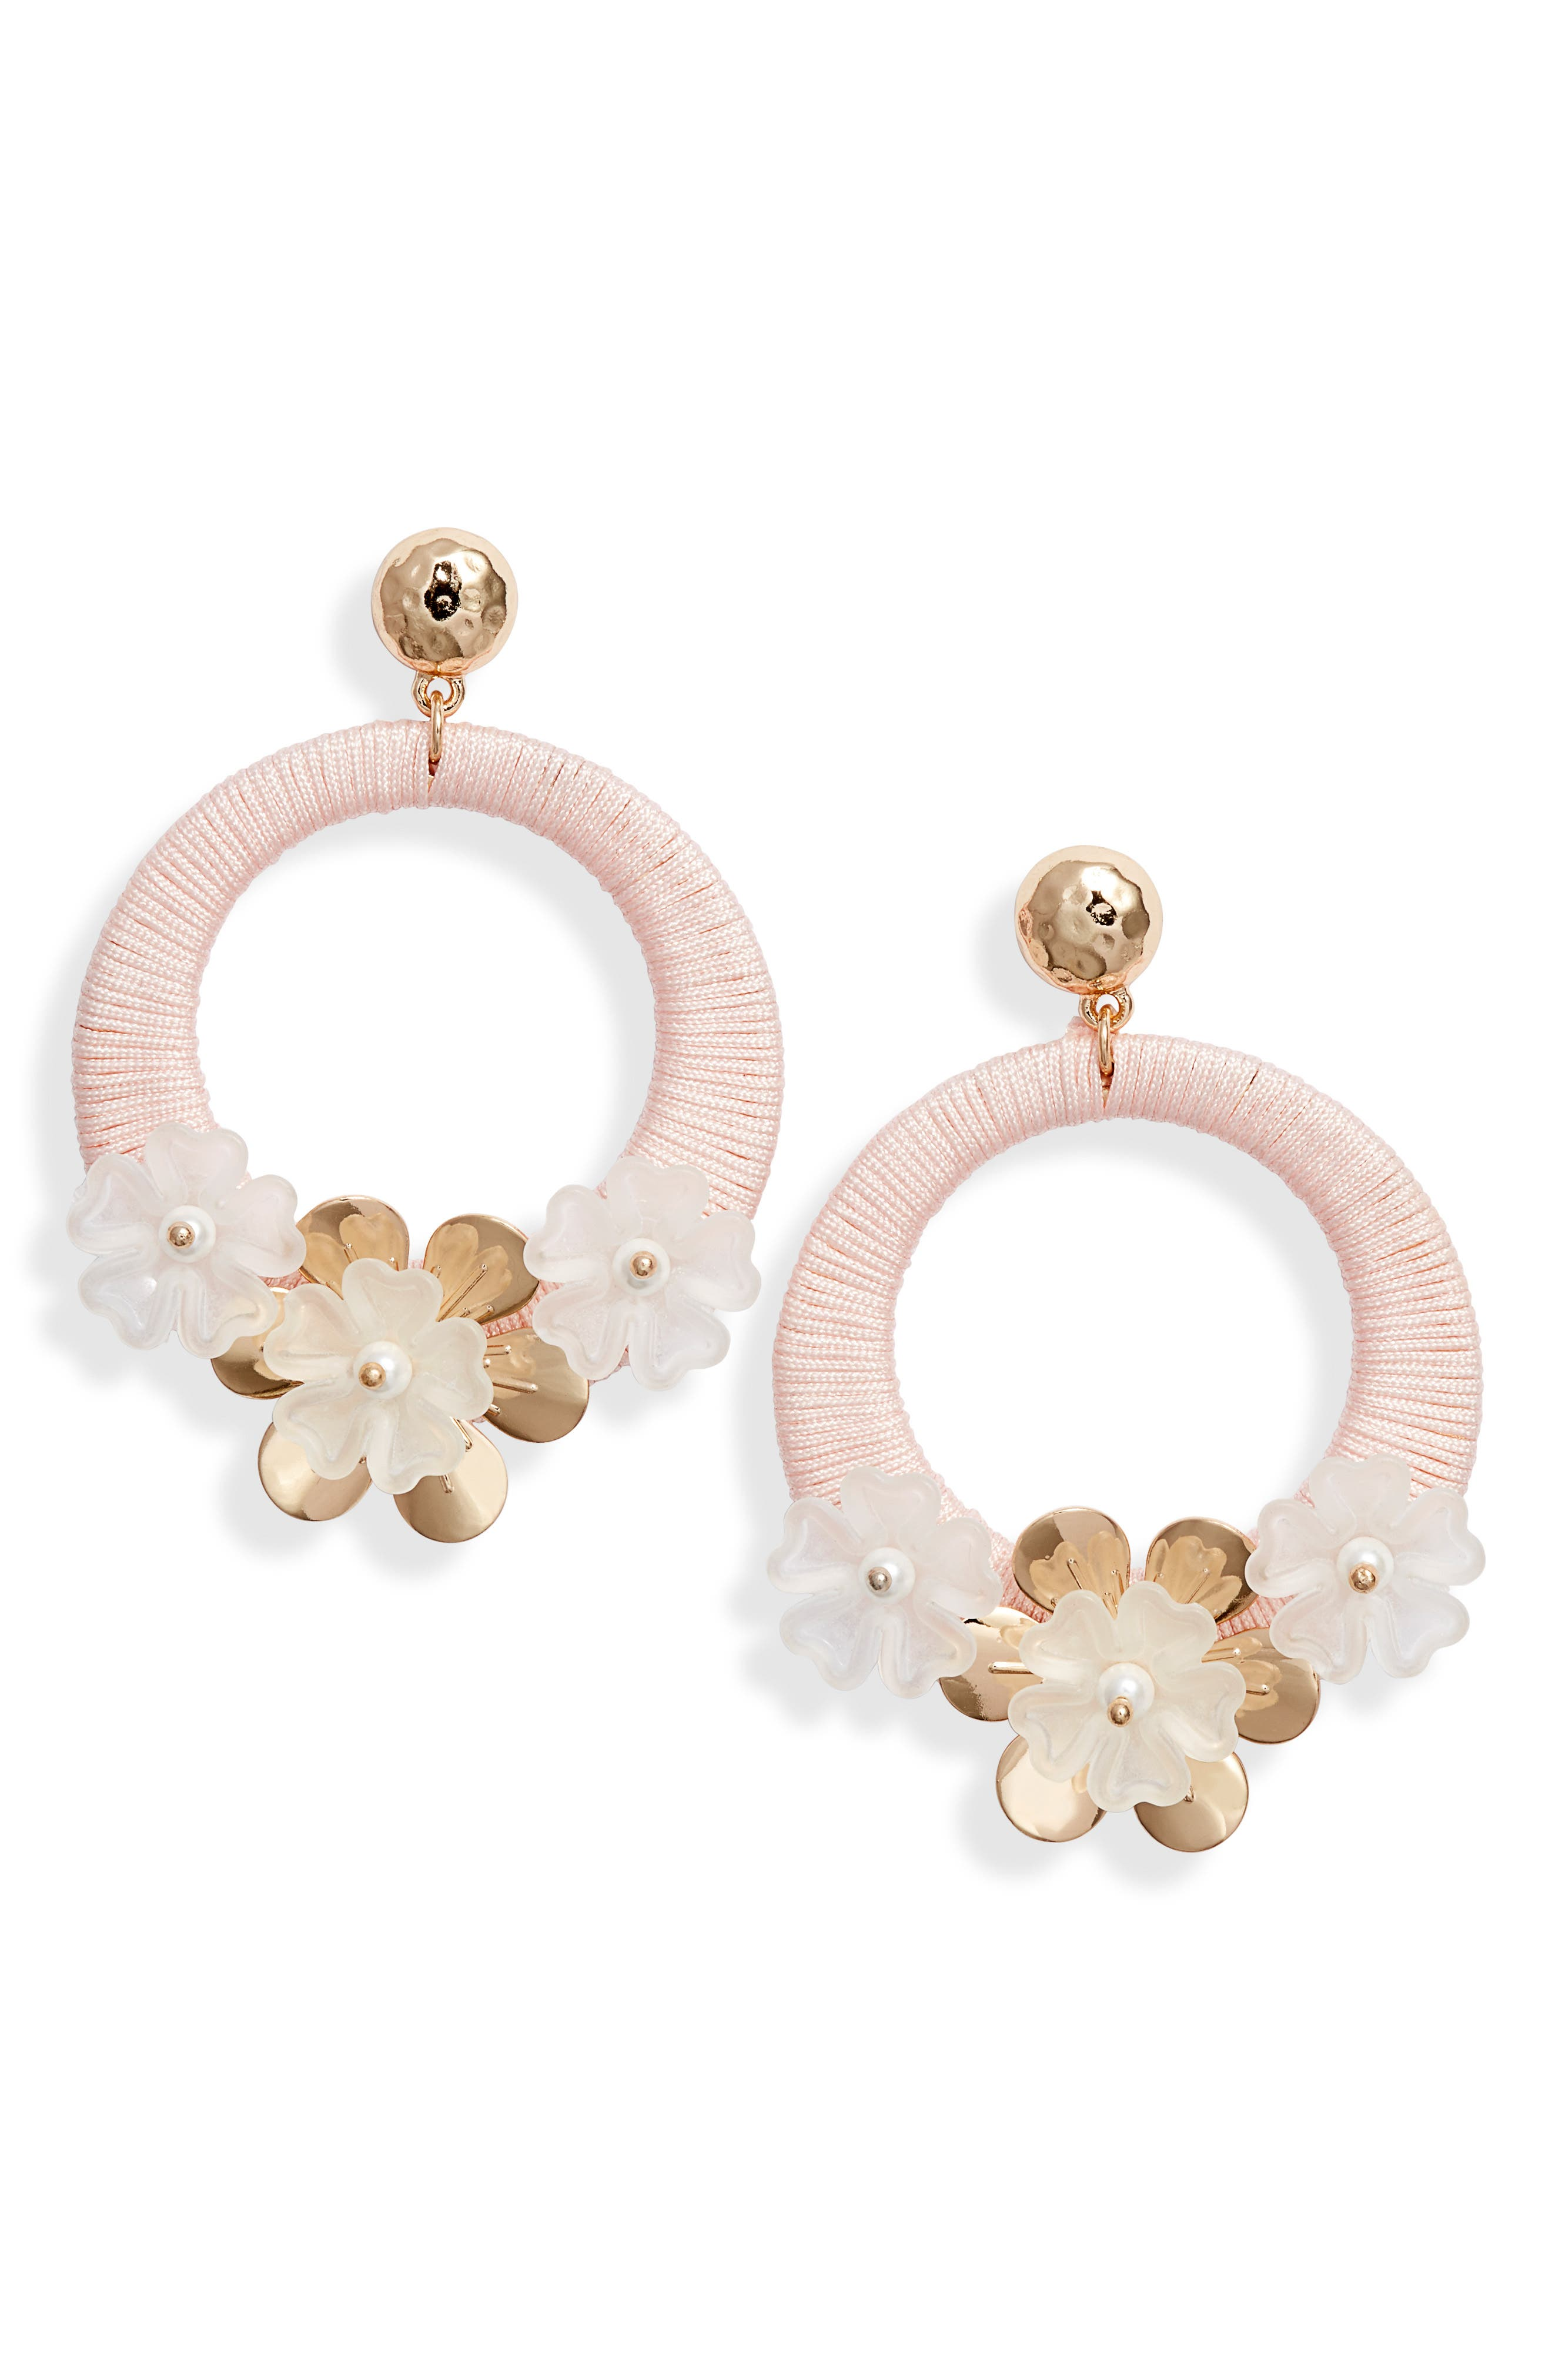 RACHEL PARCELL Flower Hoop Drop Earrings, Main, color, PINK PEARL- GOLD